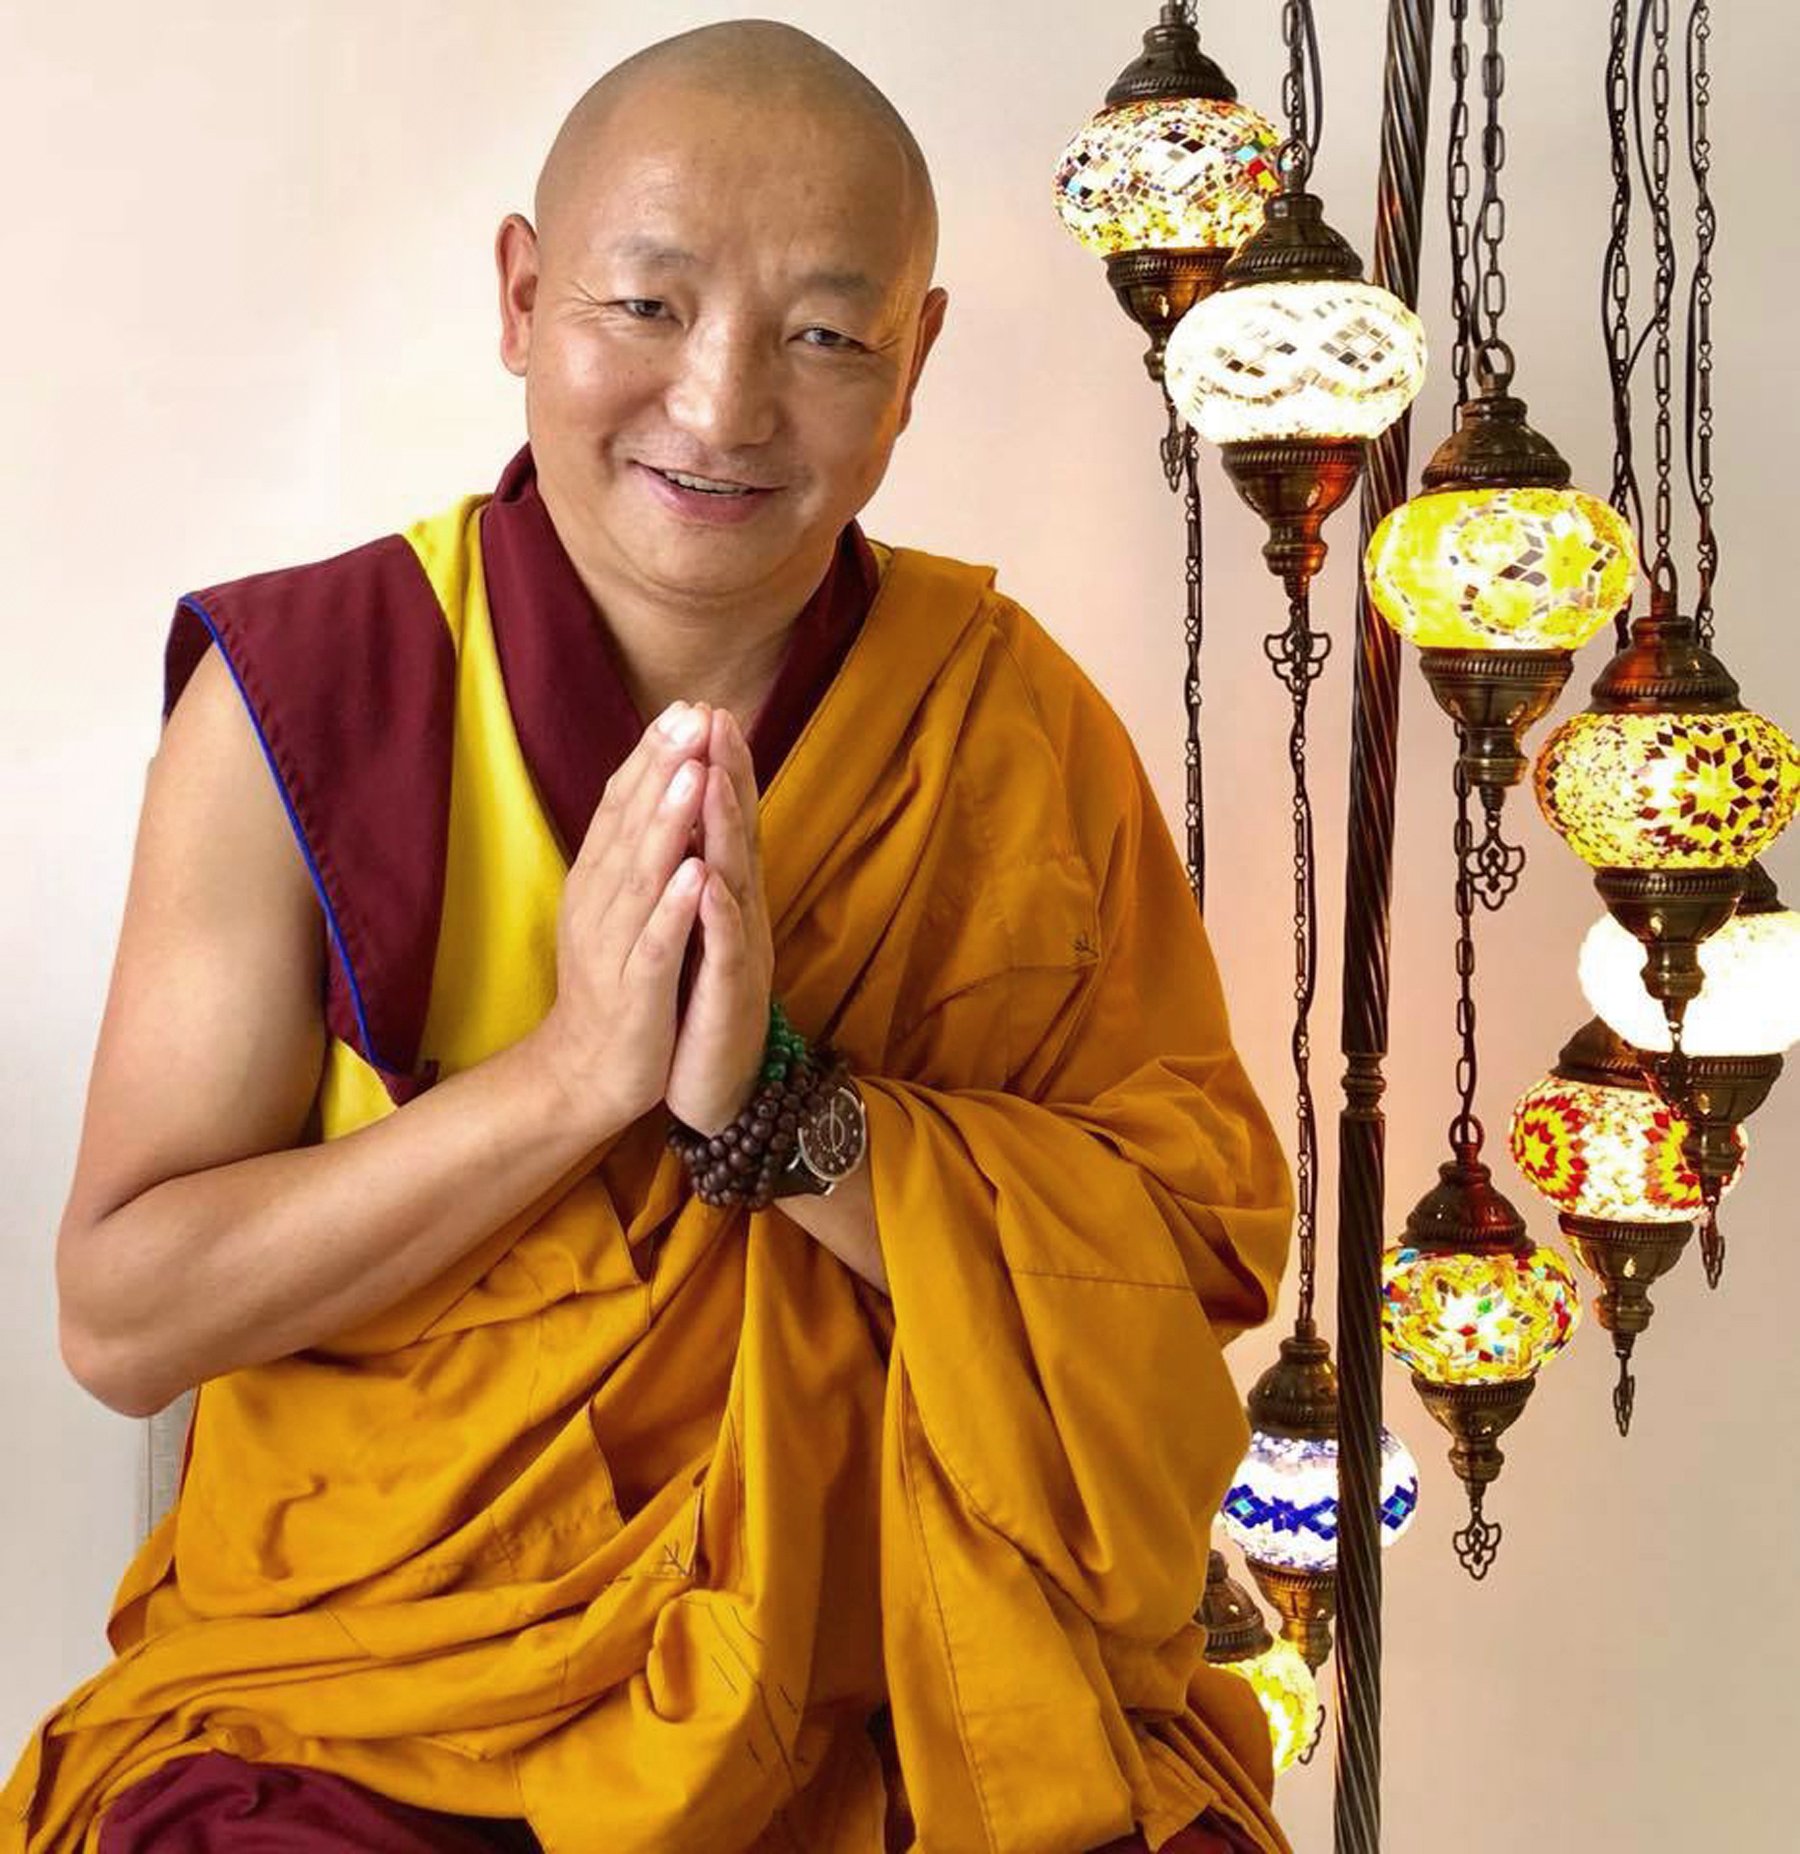 Geshe Gyalten Portrait | Awakening Vajra International